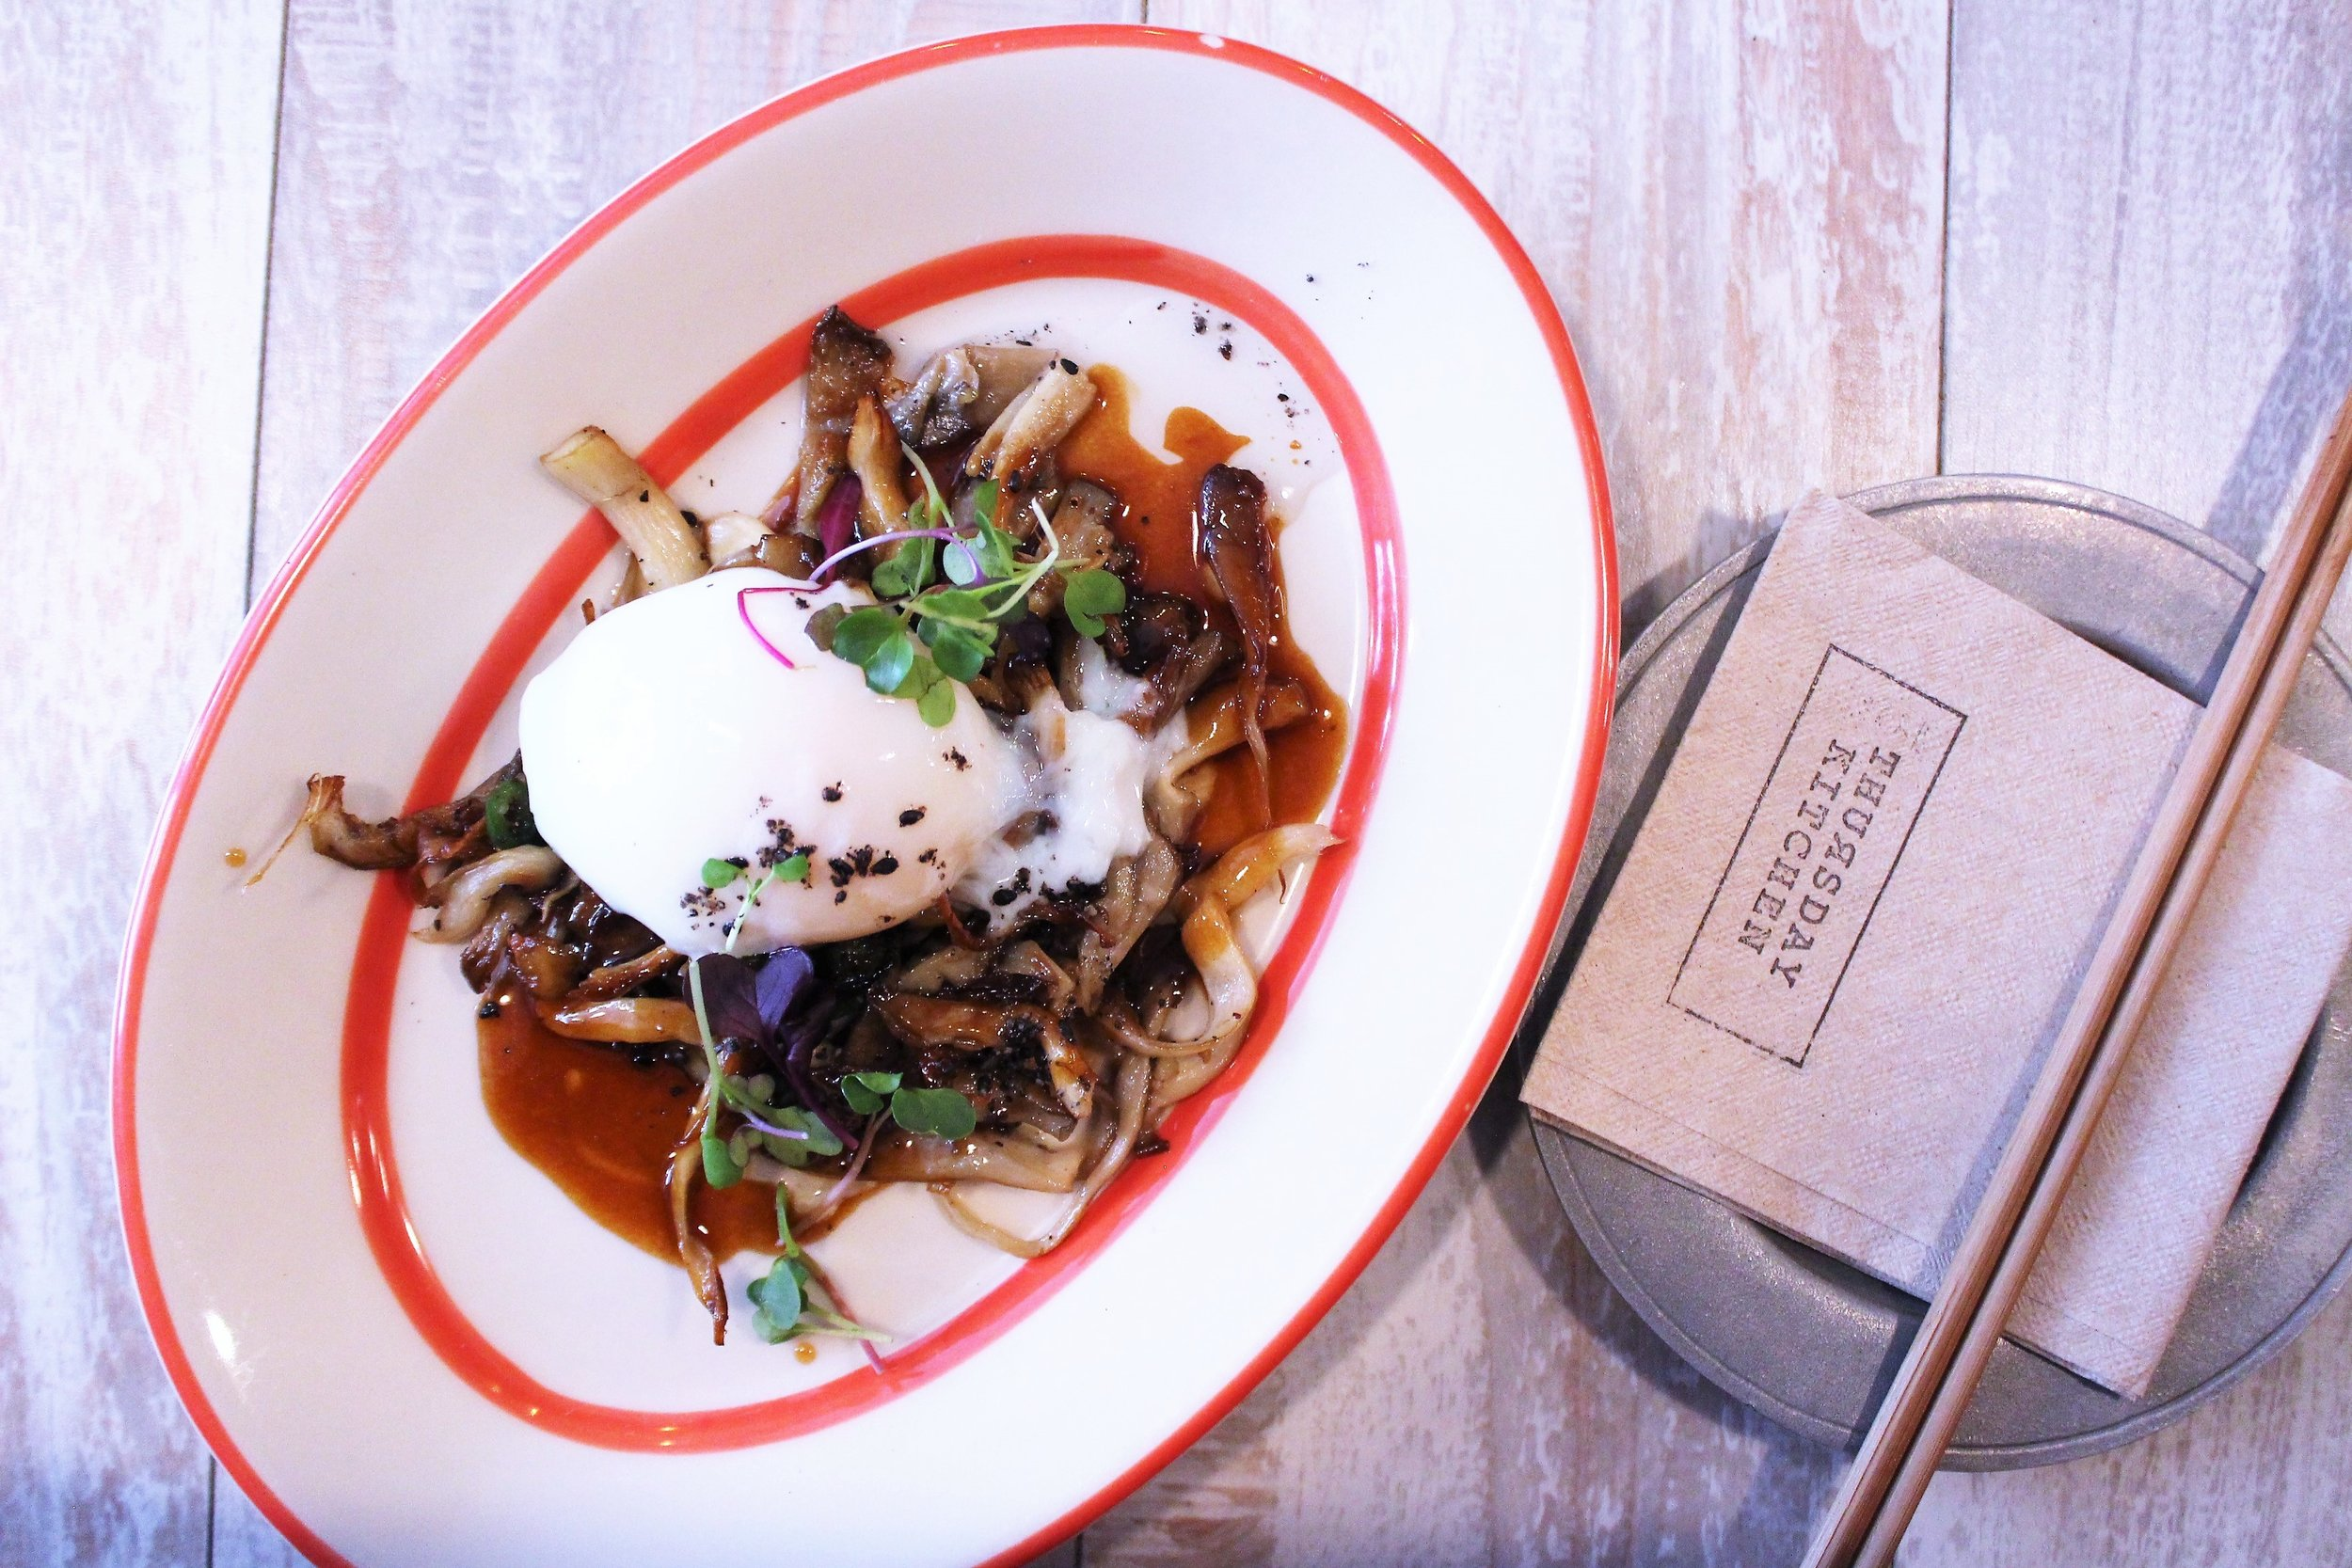 Mushroom Sautéed Oyster Mushroom with Poached Egg and Truffle Infused Kabayaki Sauce at Thursday Kitchen in New York City